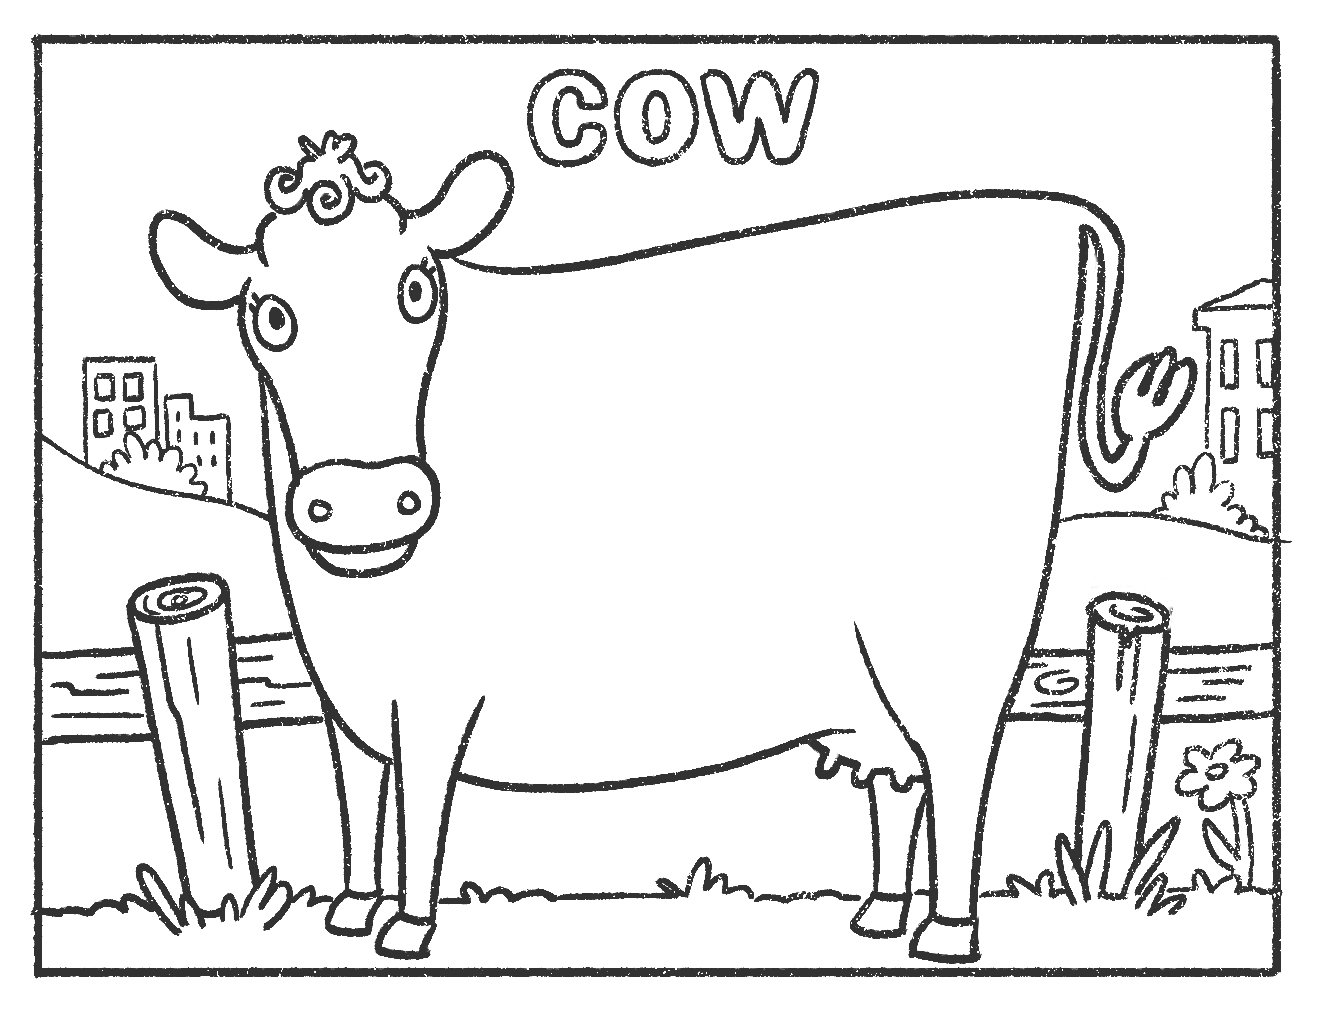 Cow_Colouring